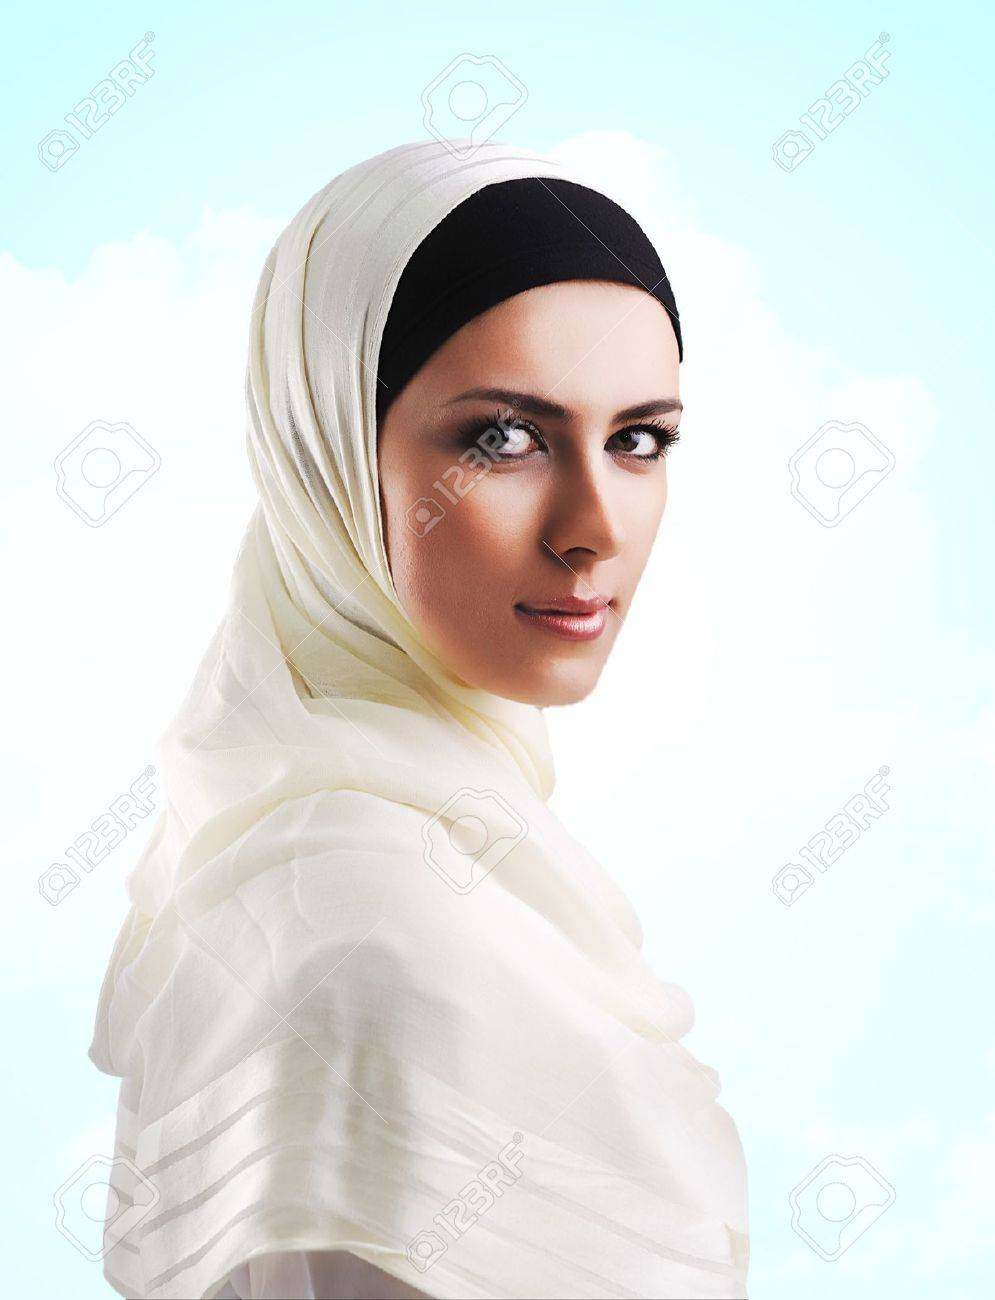 muslim single women in corsicana Single muslim women are you looking to meet single muslim women in today's world, it's not always easy to find opportunities to date muslim women, especially if there isn't a large and vibrant community around you to provide muslim dating opportunities.